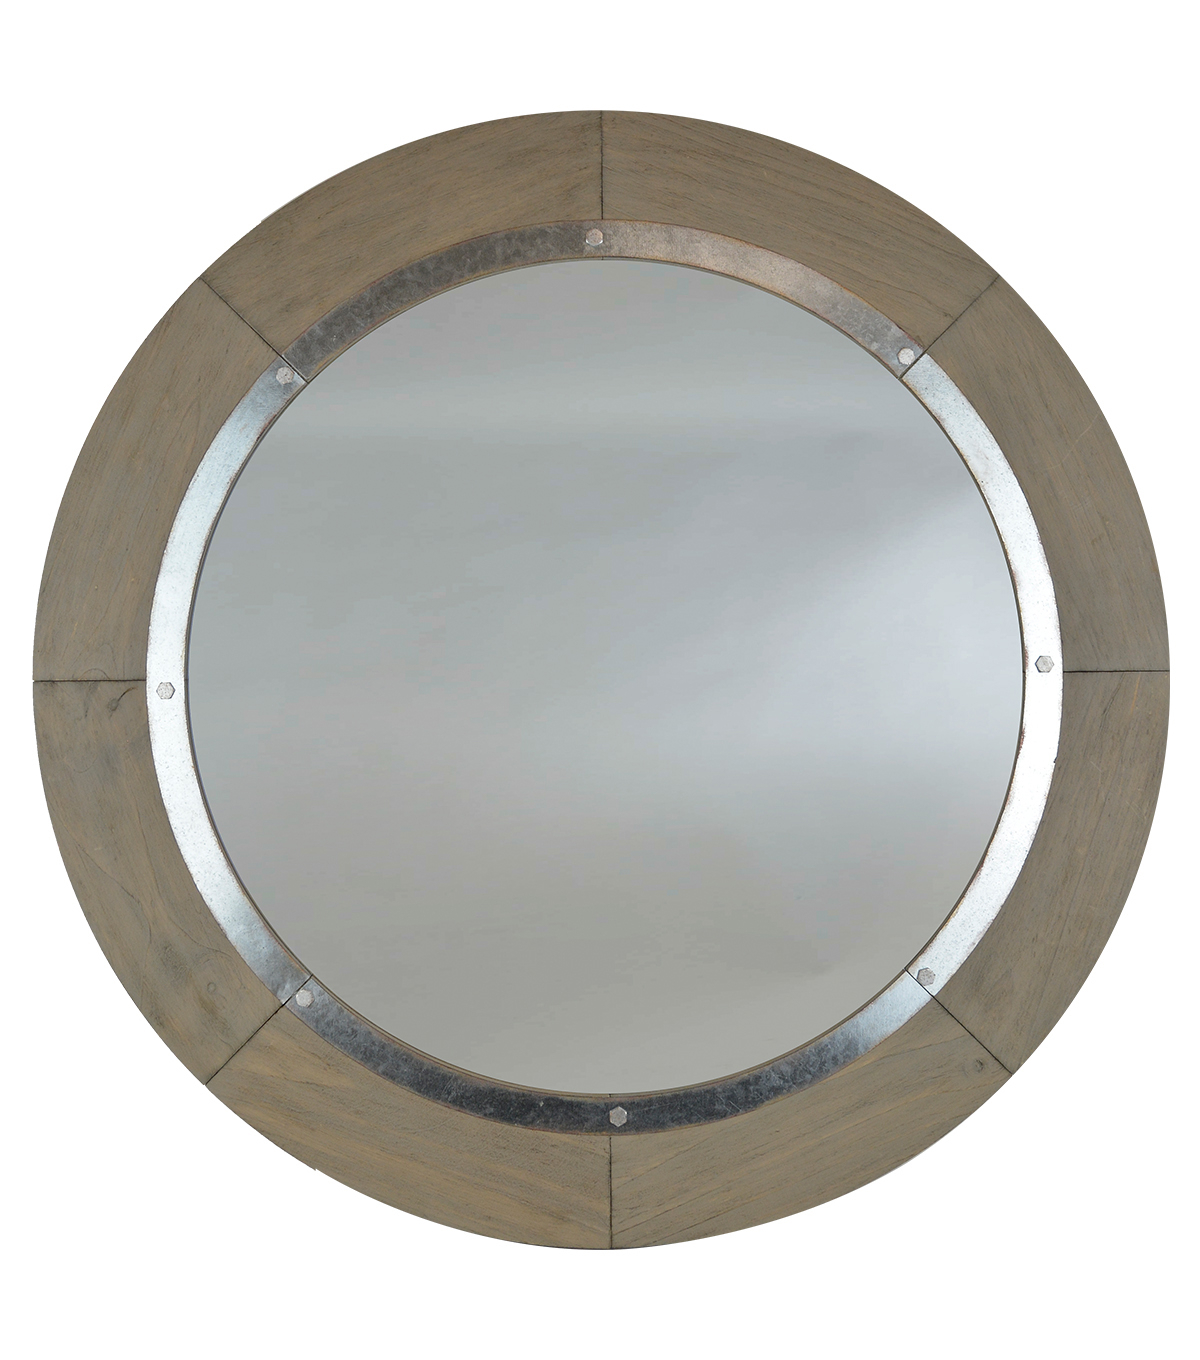 Hudson 43 Rustic 24'' Round Mirror With Metal Accent Throughout Oval Metallic Accent Mirrors (Image 8 of 20)